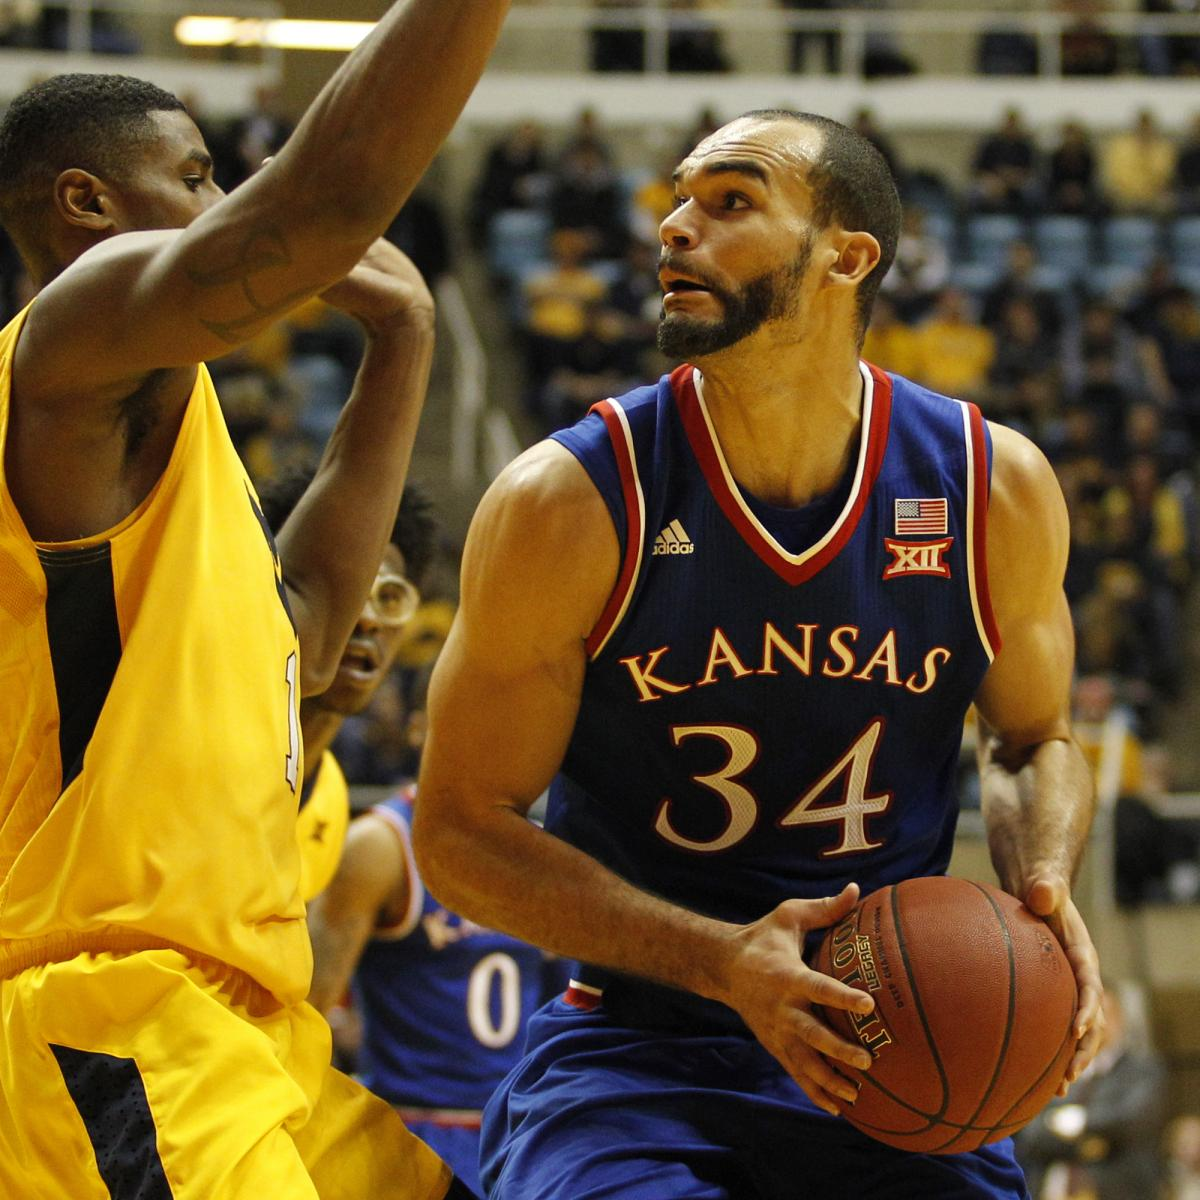 Kansas vs iowa state live score highlights and reaction iowa state live score highlights and reaction bleacher report latest news videos and highlights publicscrutiny Gallery